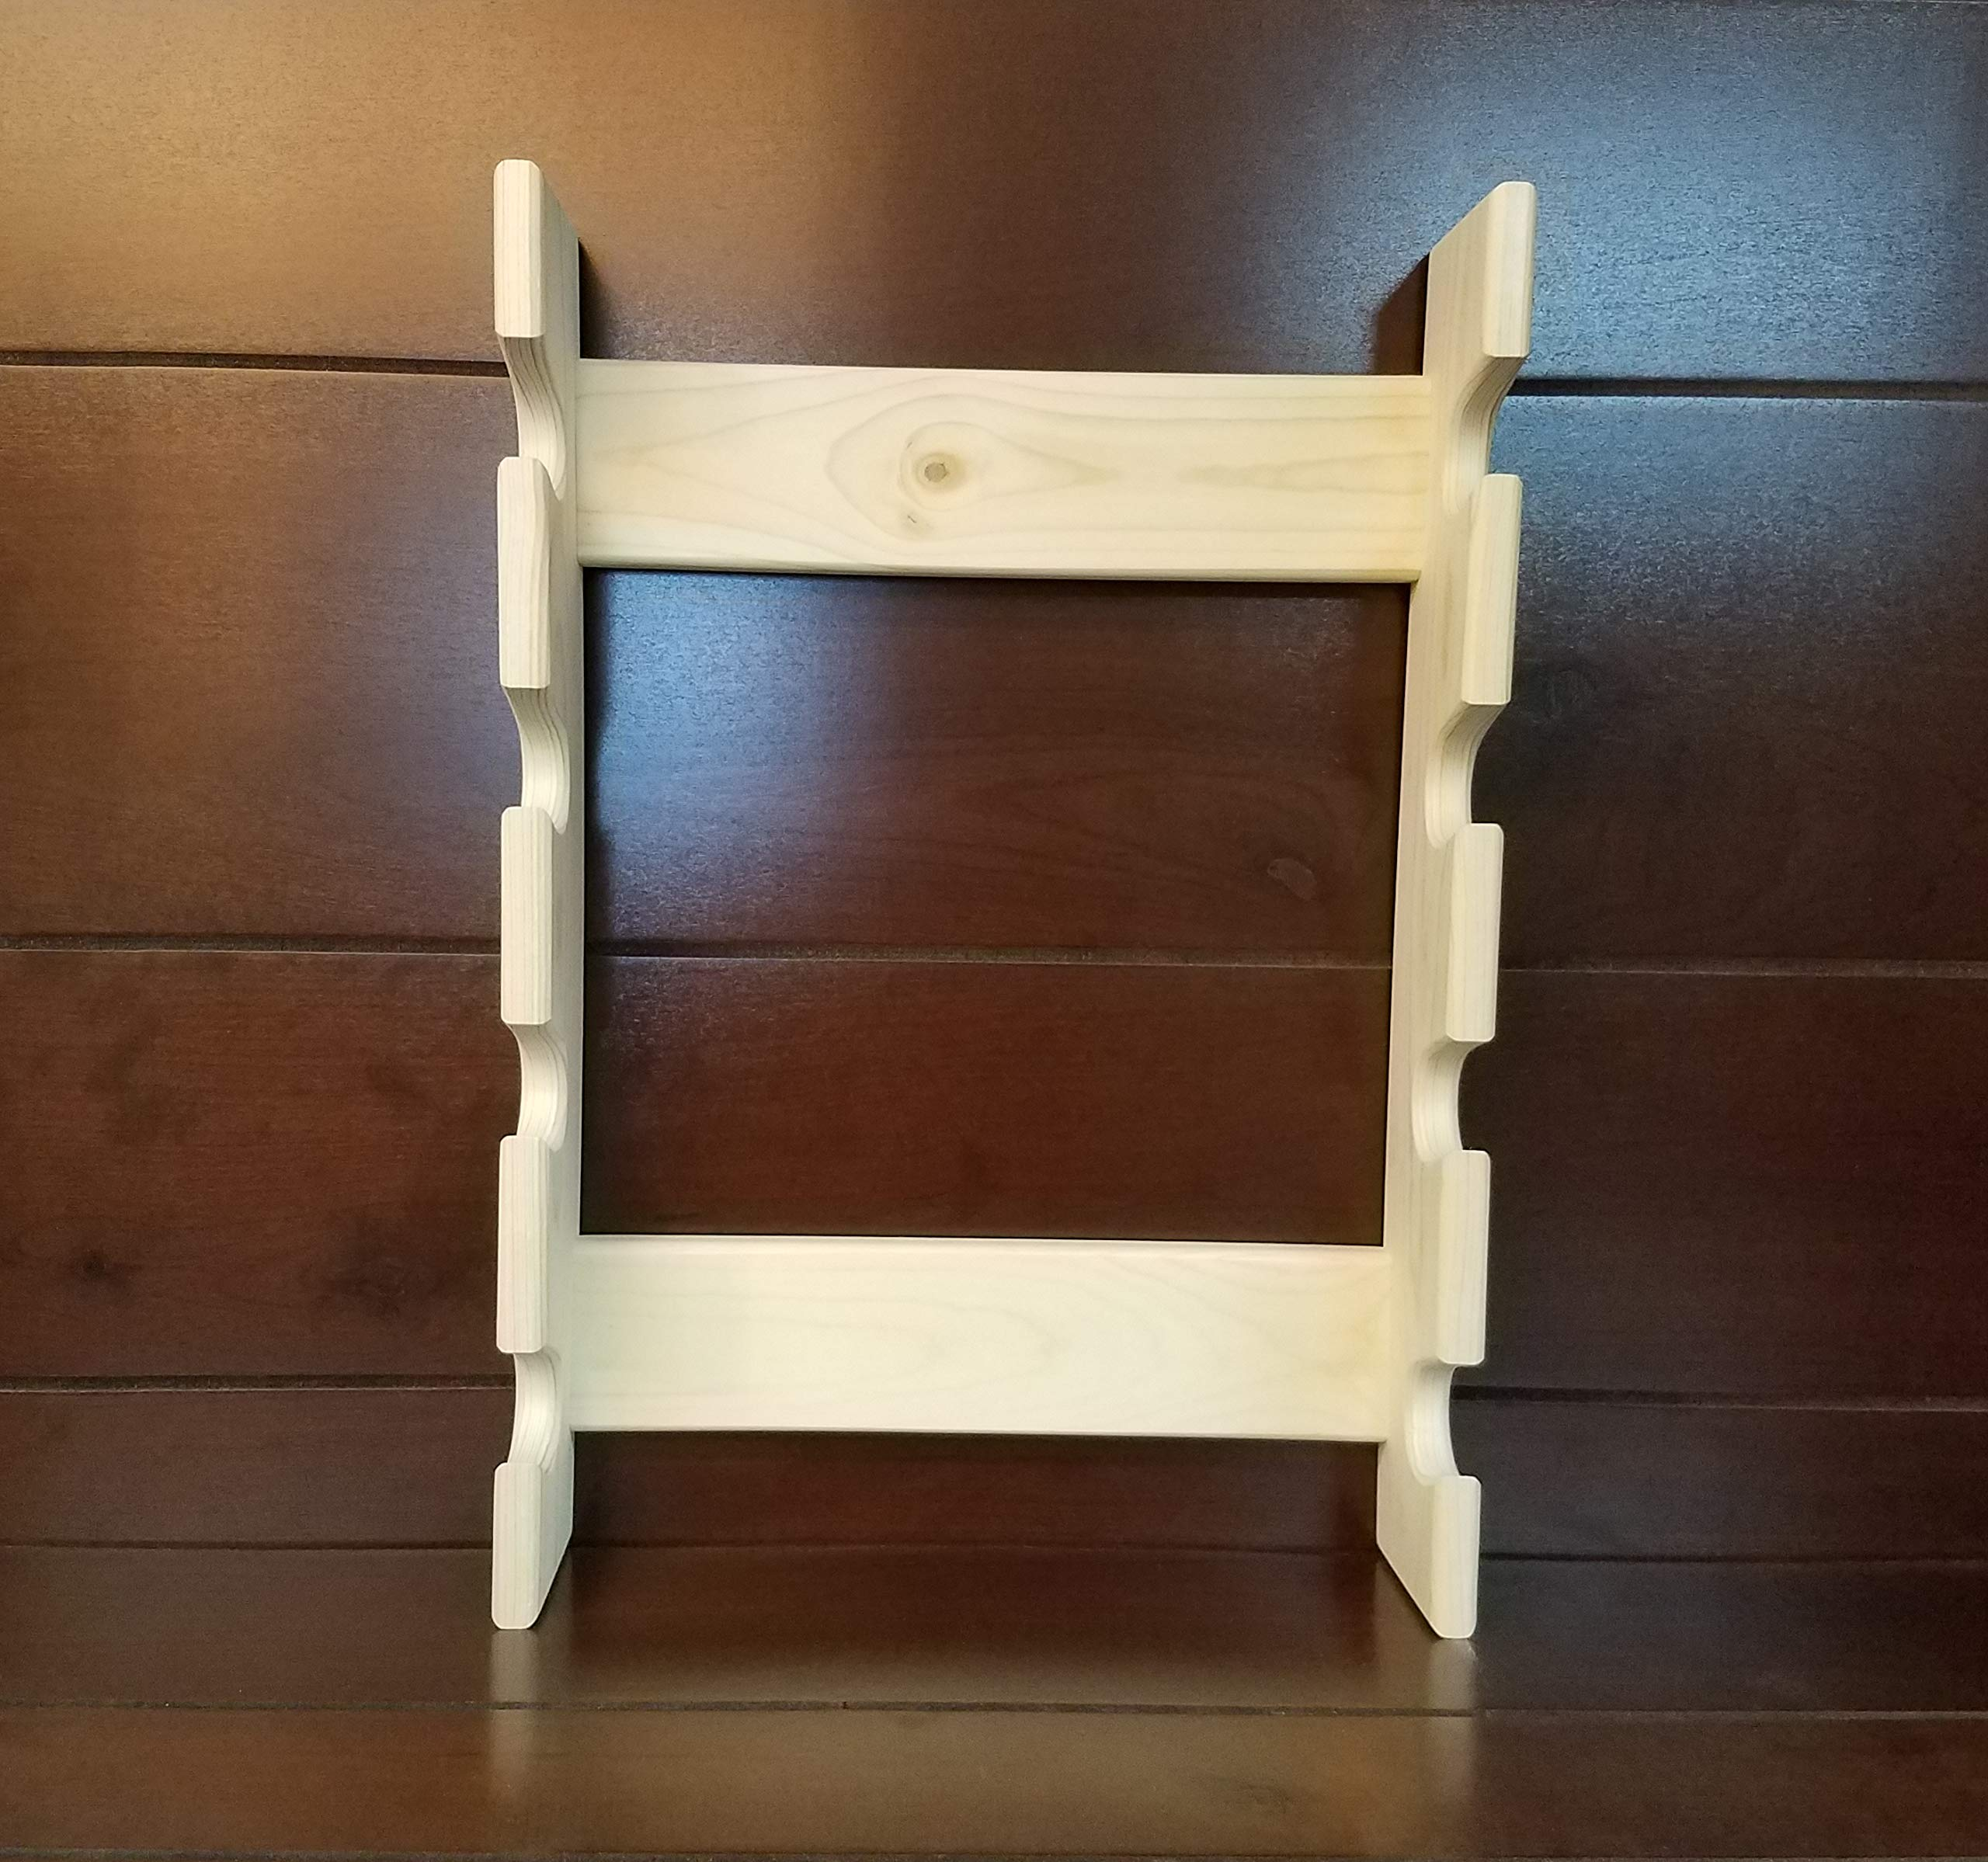 Rolling Pin Rack with Four Slots - Multiple Rolling Pin Rack - Rolling Pin Holder - Rolling Pin Storage - 4 Rolling Pin Rack by Rusty Nail Custom Woodworking (Image #6)